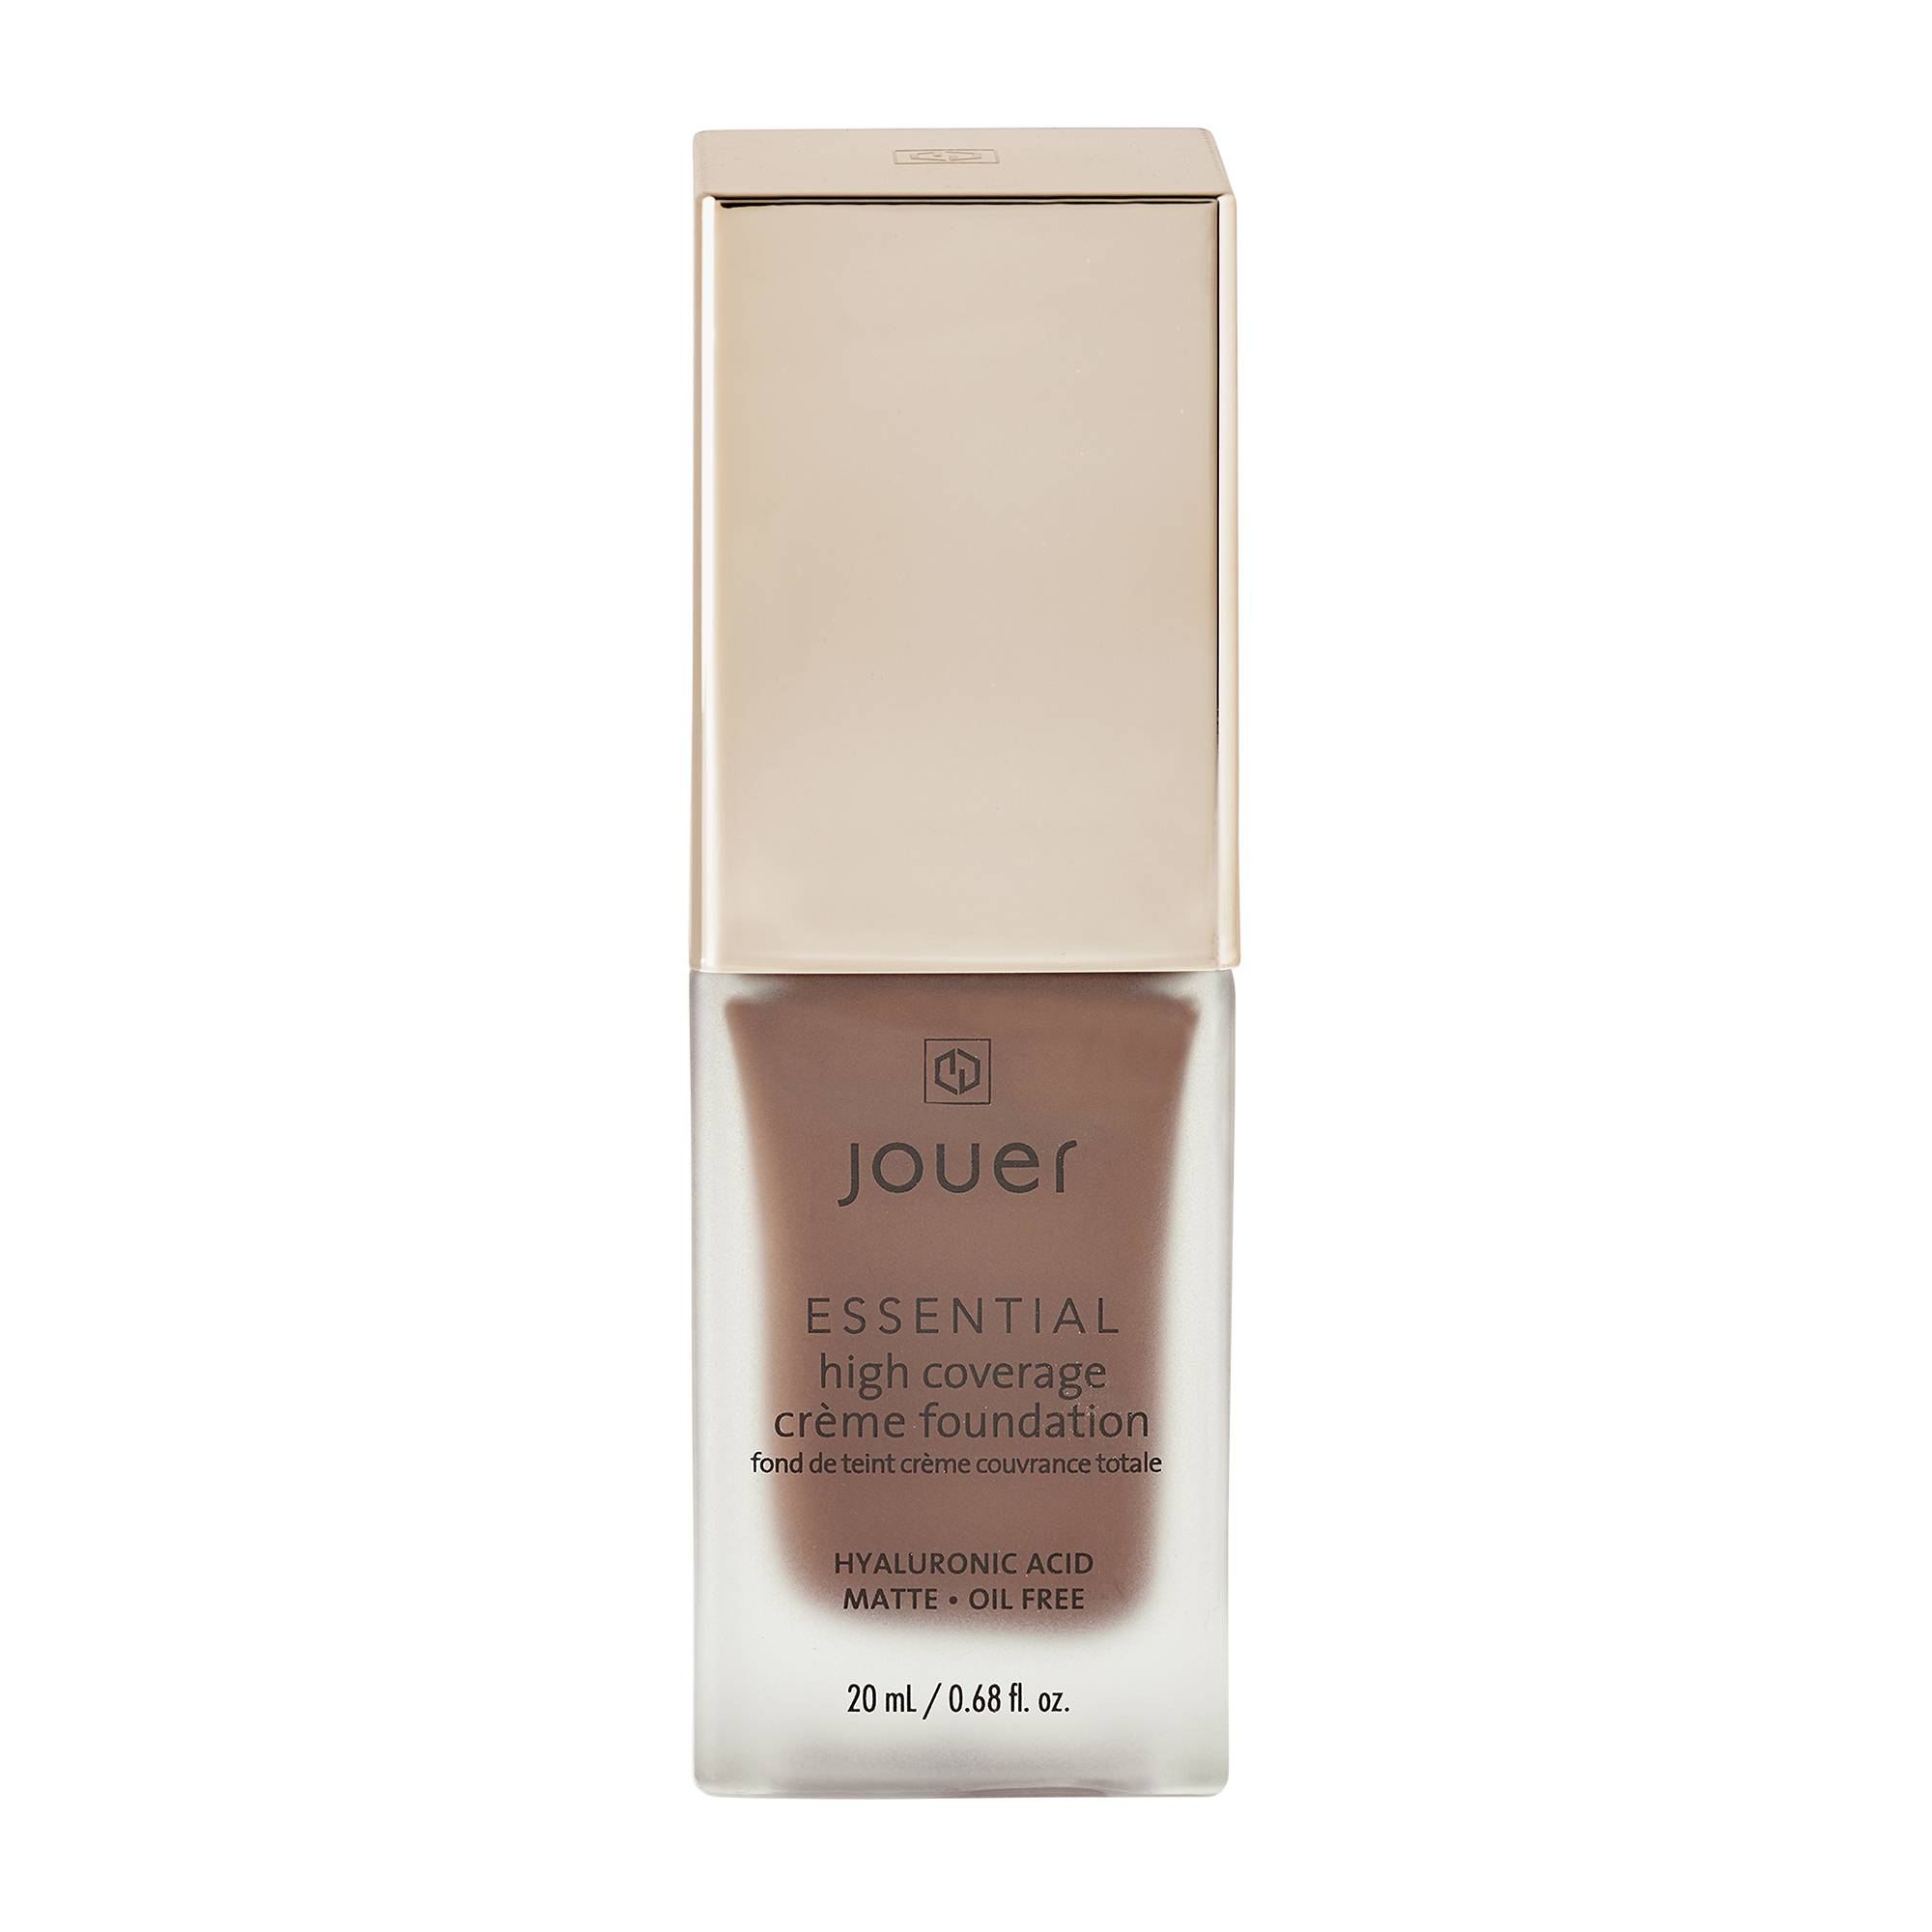 Jouer Cosmetics Essential High Coverage Creme Foundation Caviar 20ml